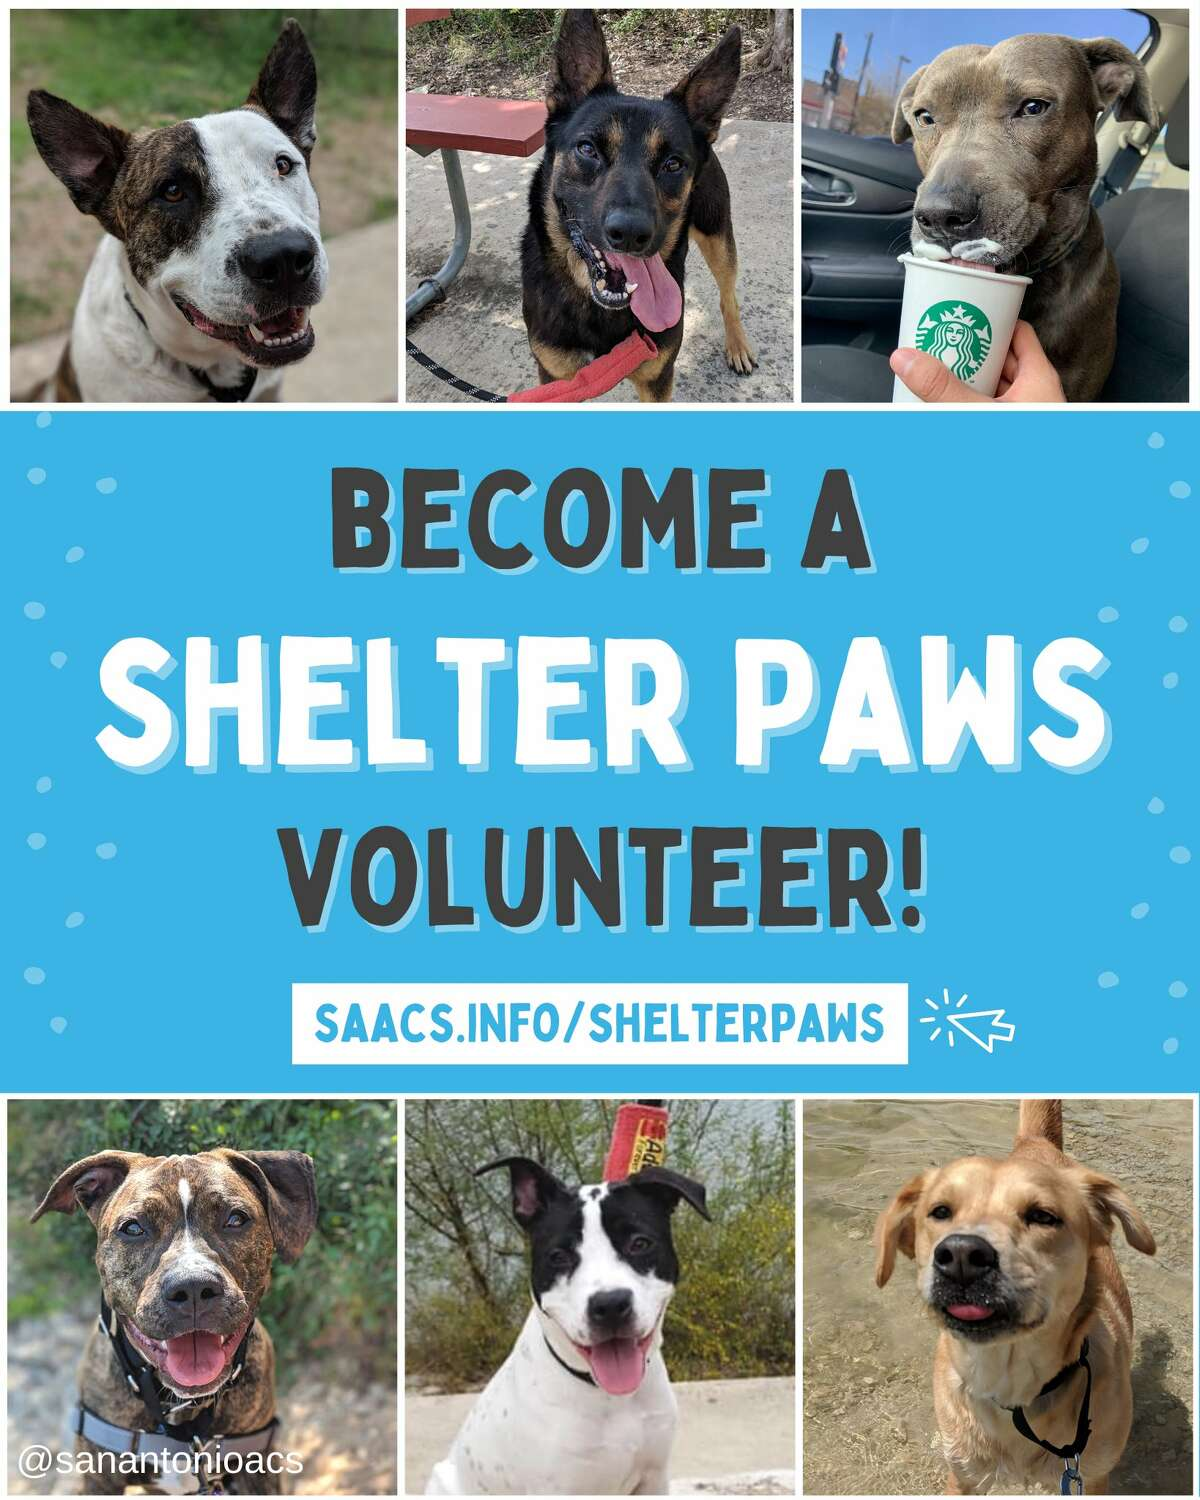 Have a one-day doggy date with 'Shelter Paws' at San Antonio Animal Care Services .